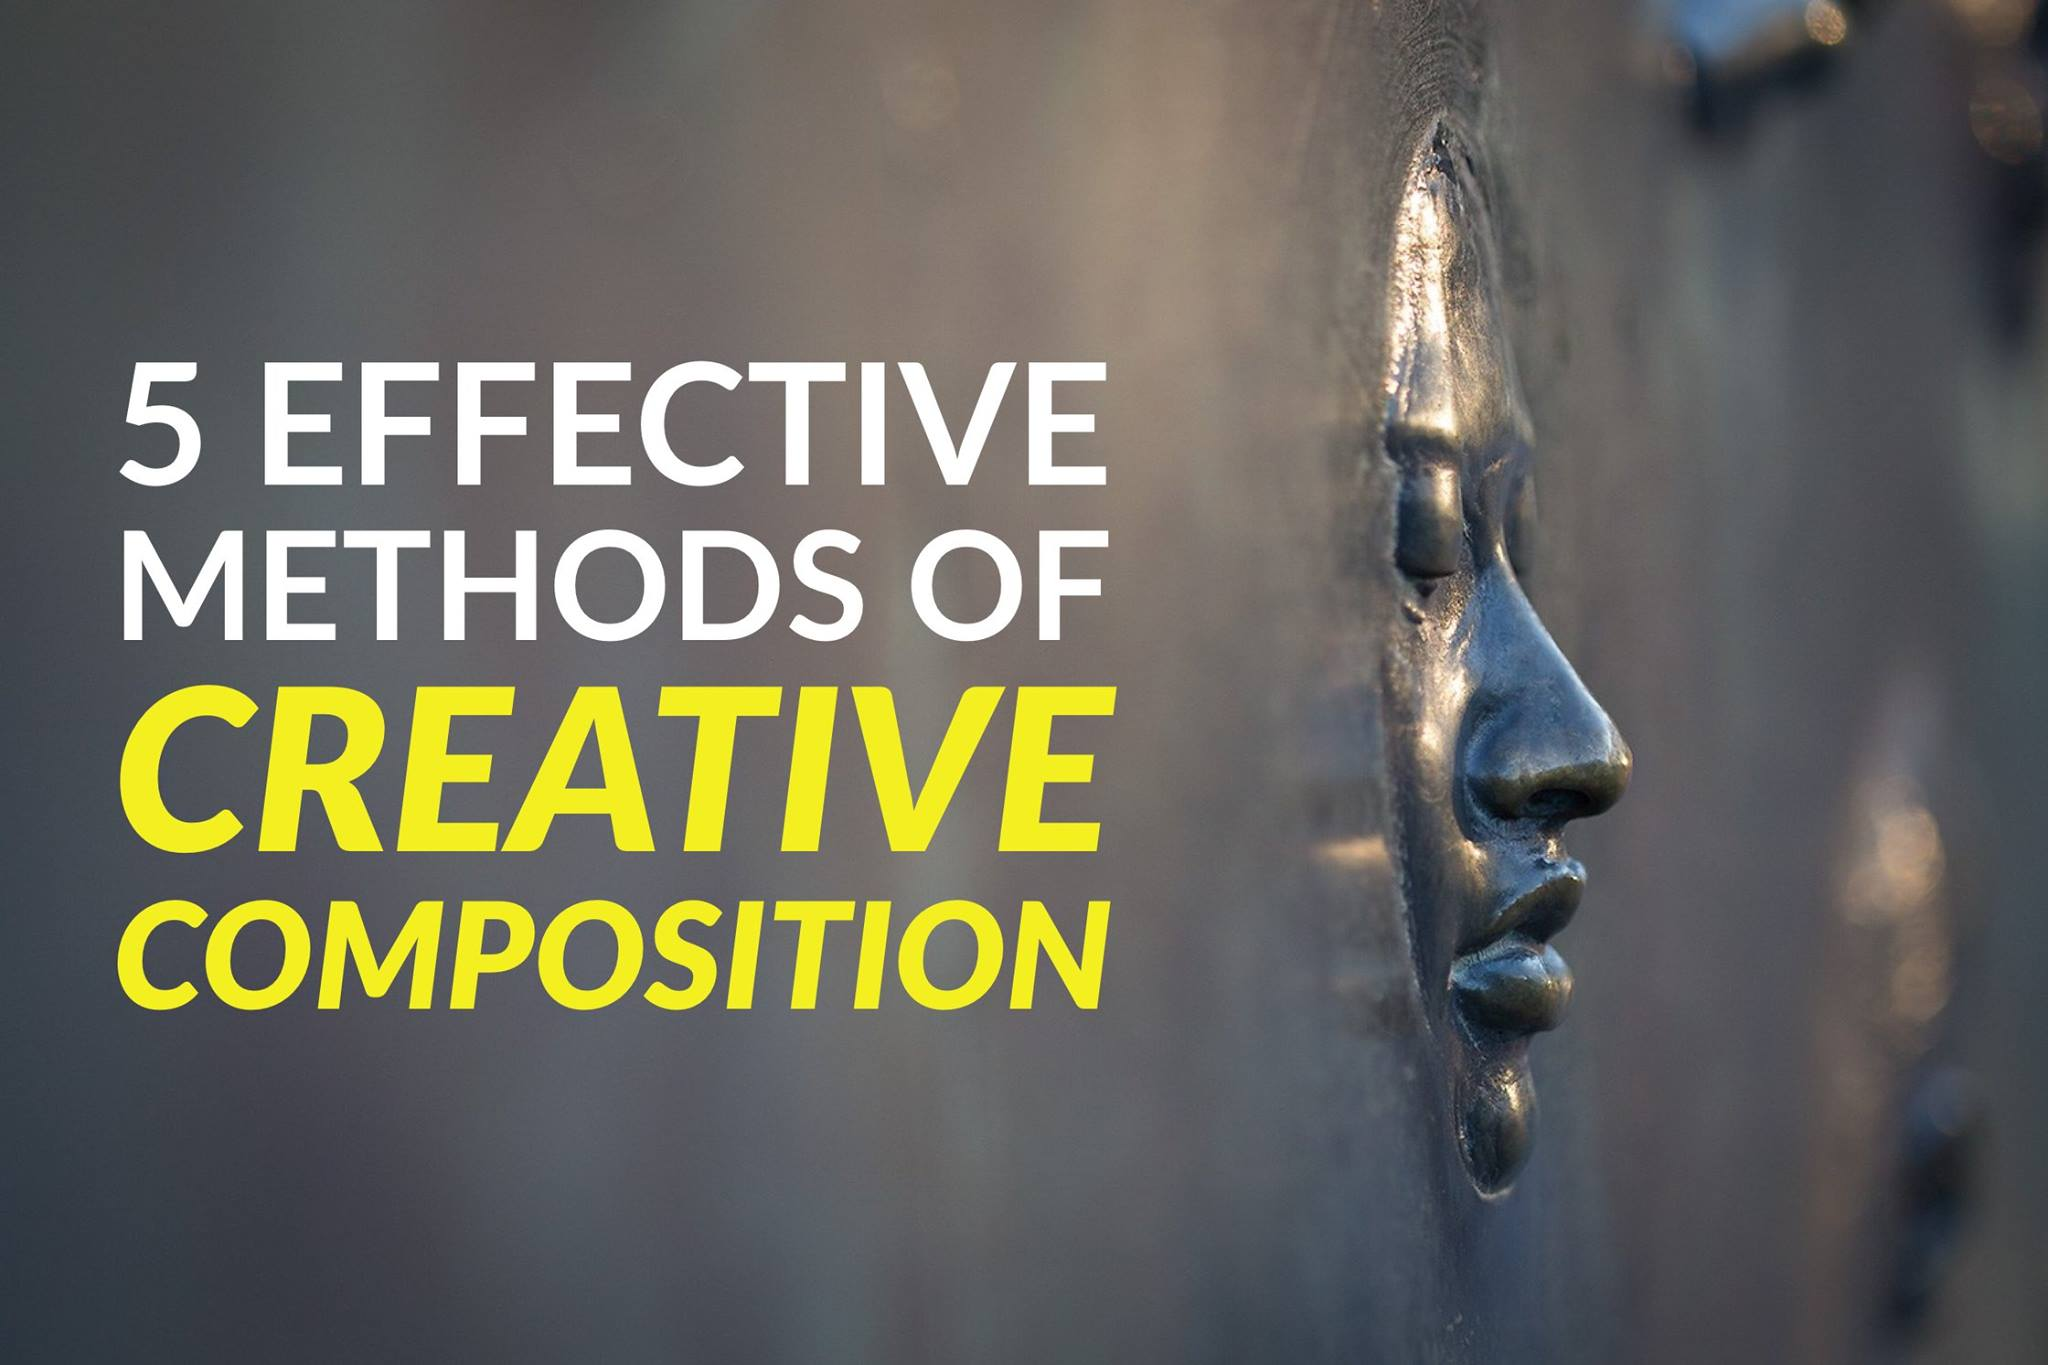 5 Effective Methods of Creative Composition